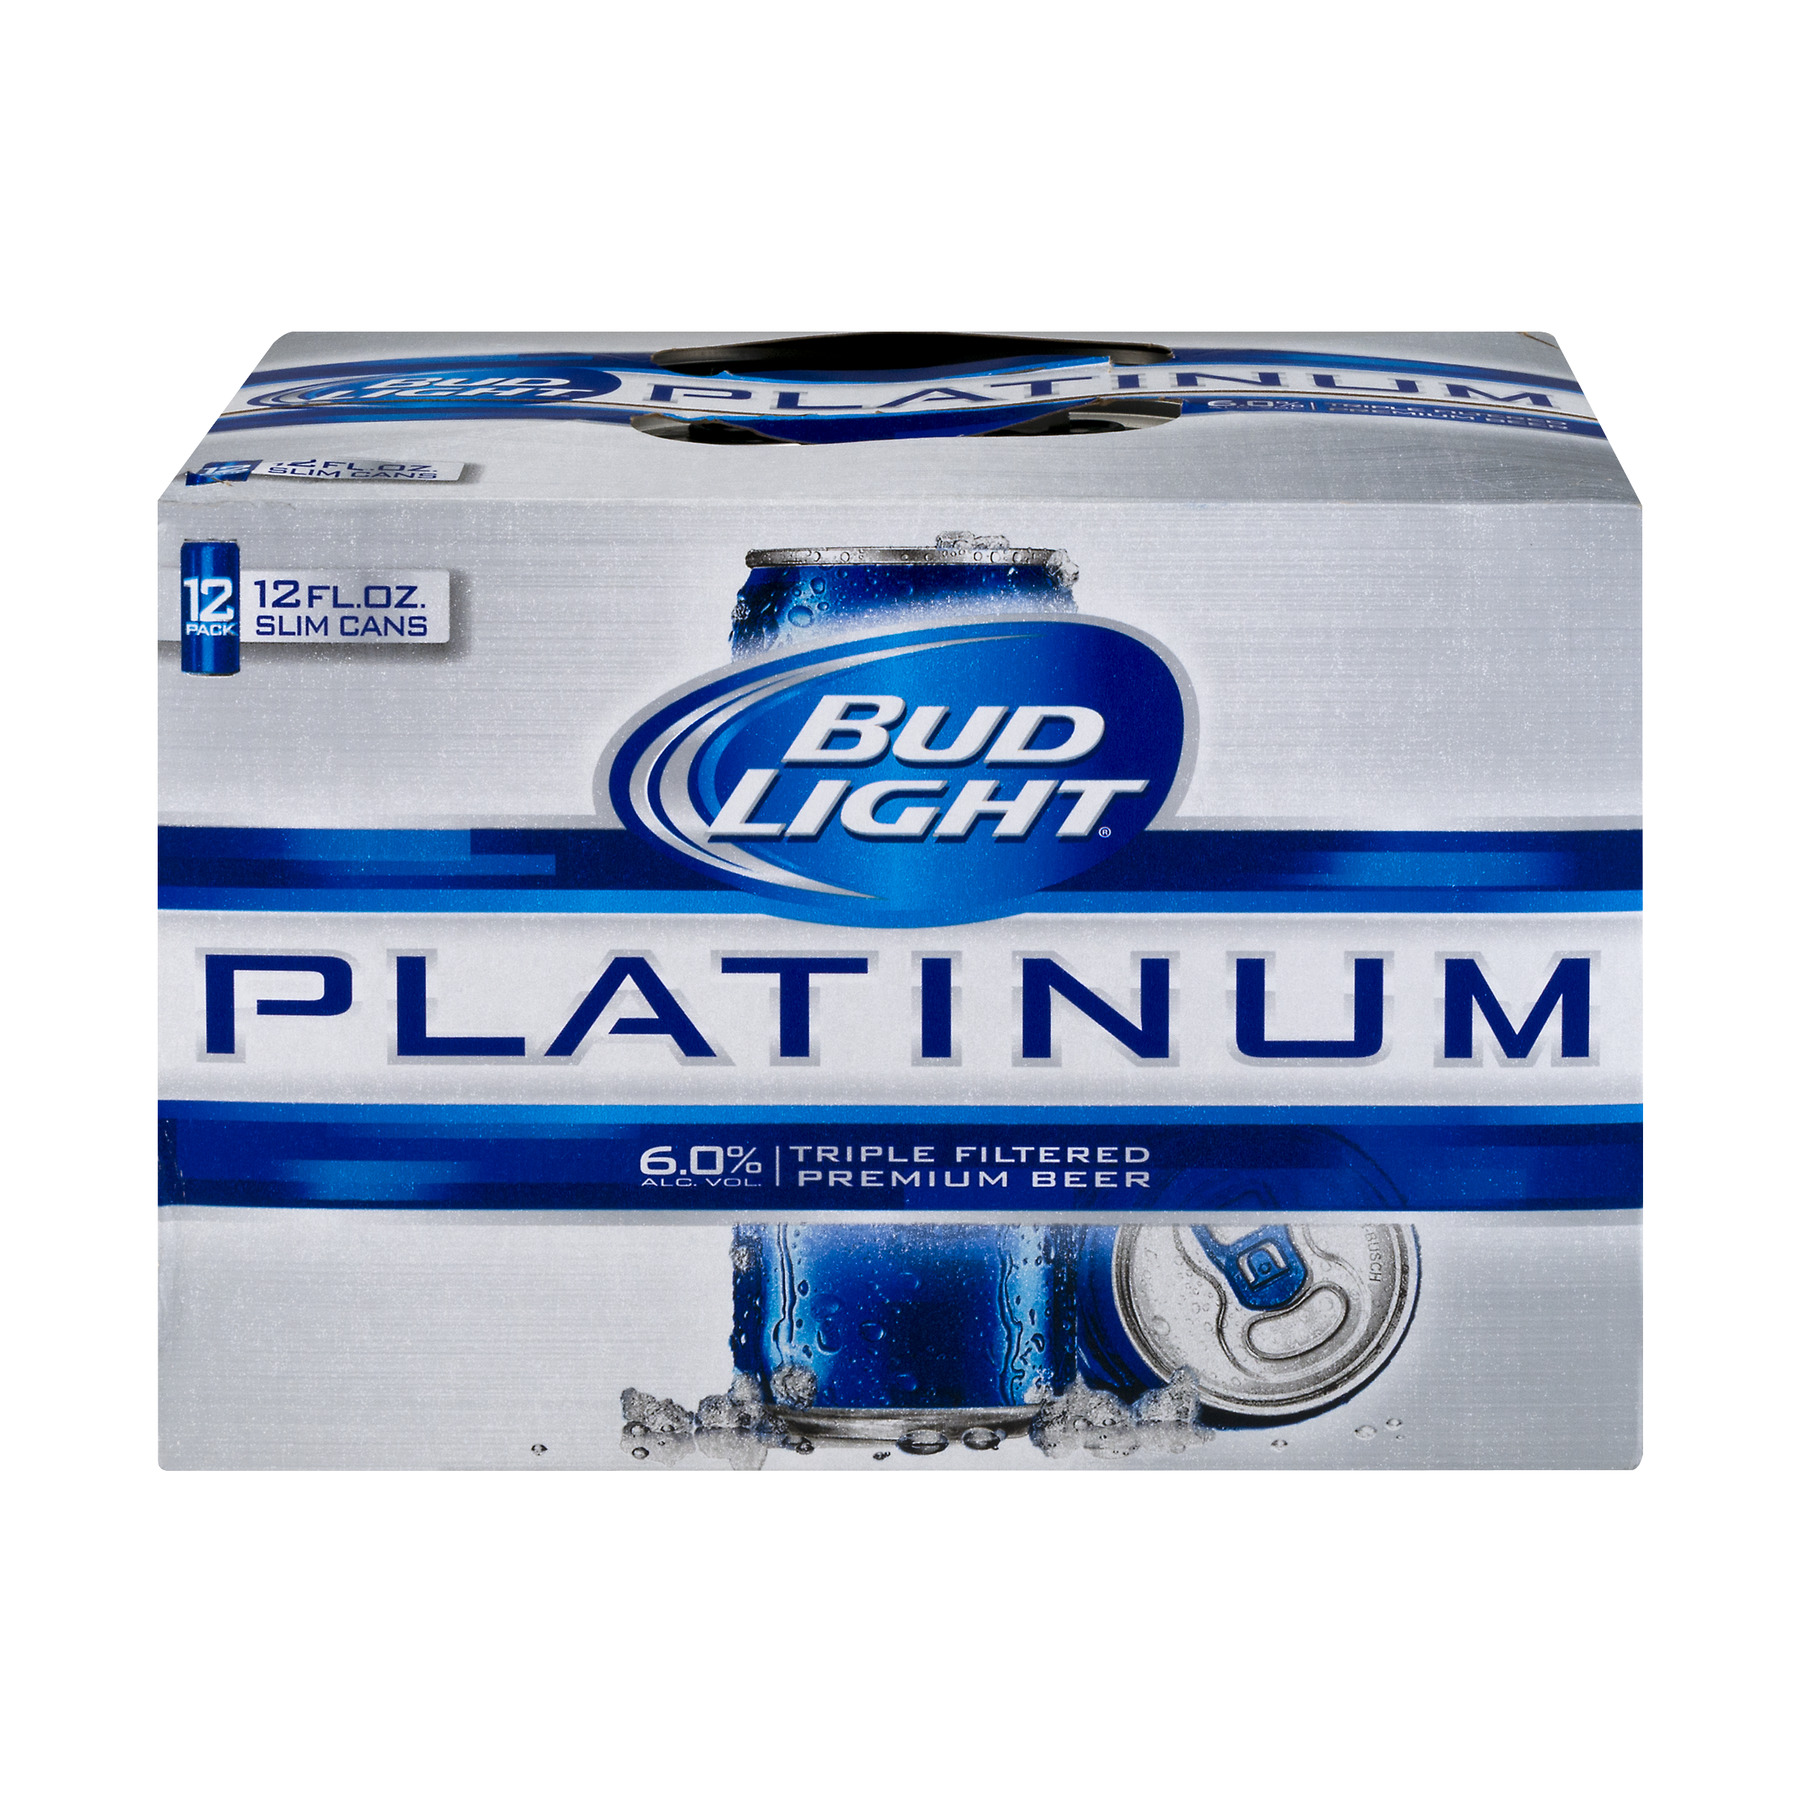 goplatinum light bud inbev gagablp platinum launch concept